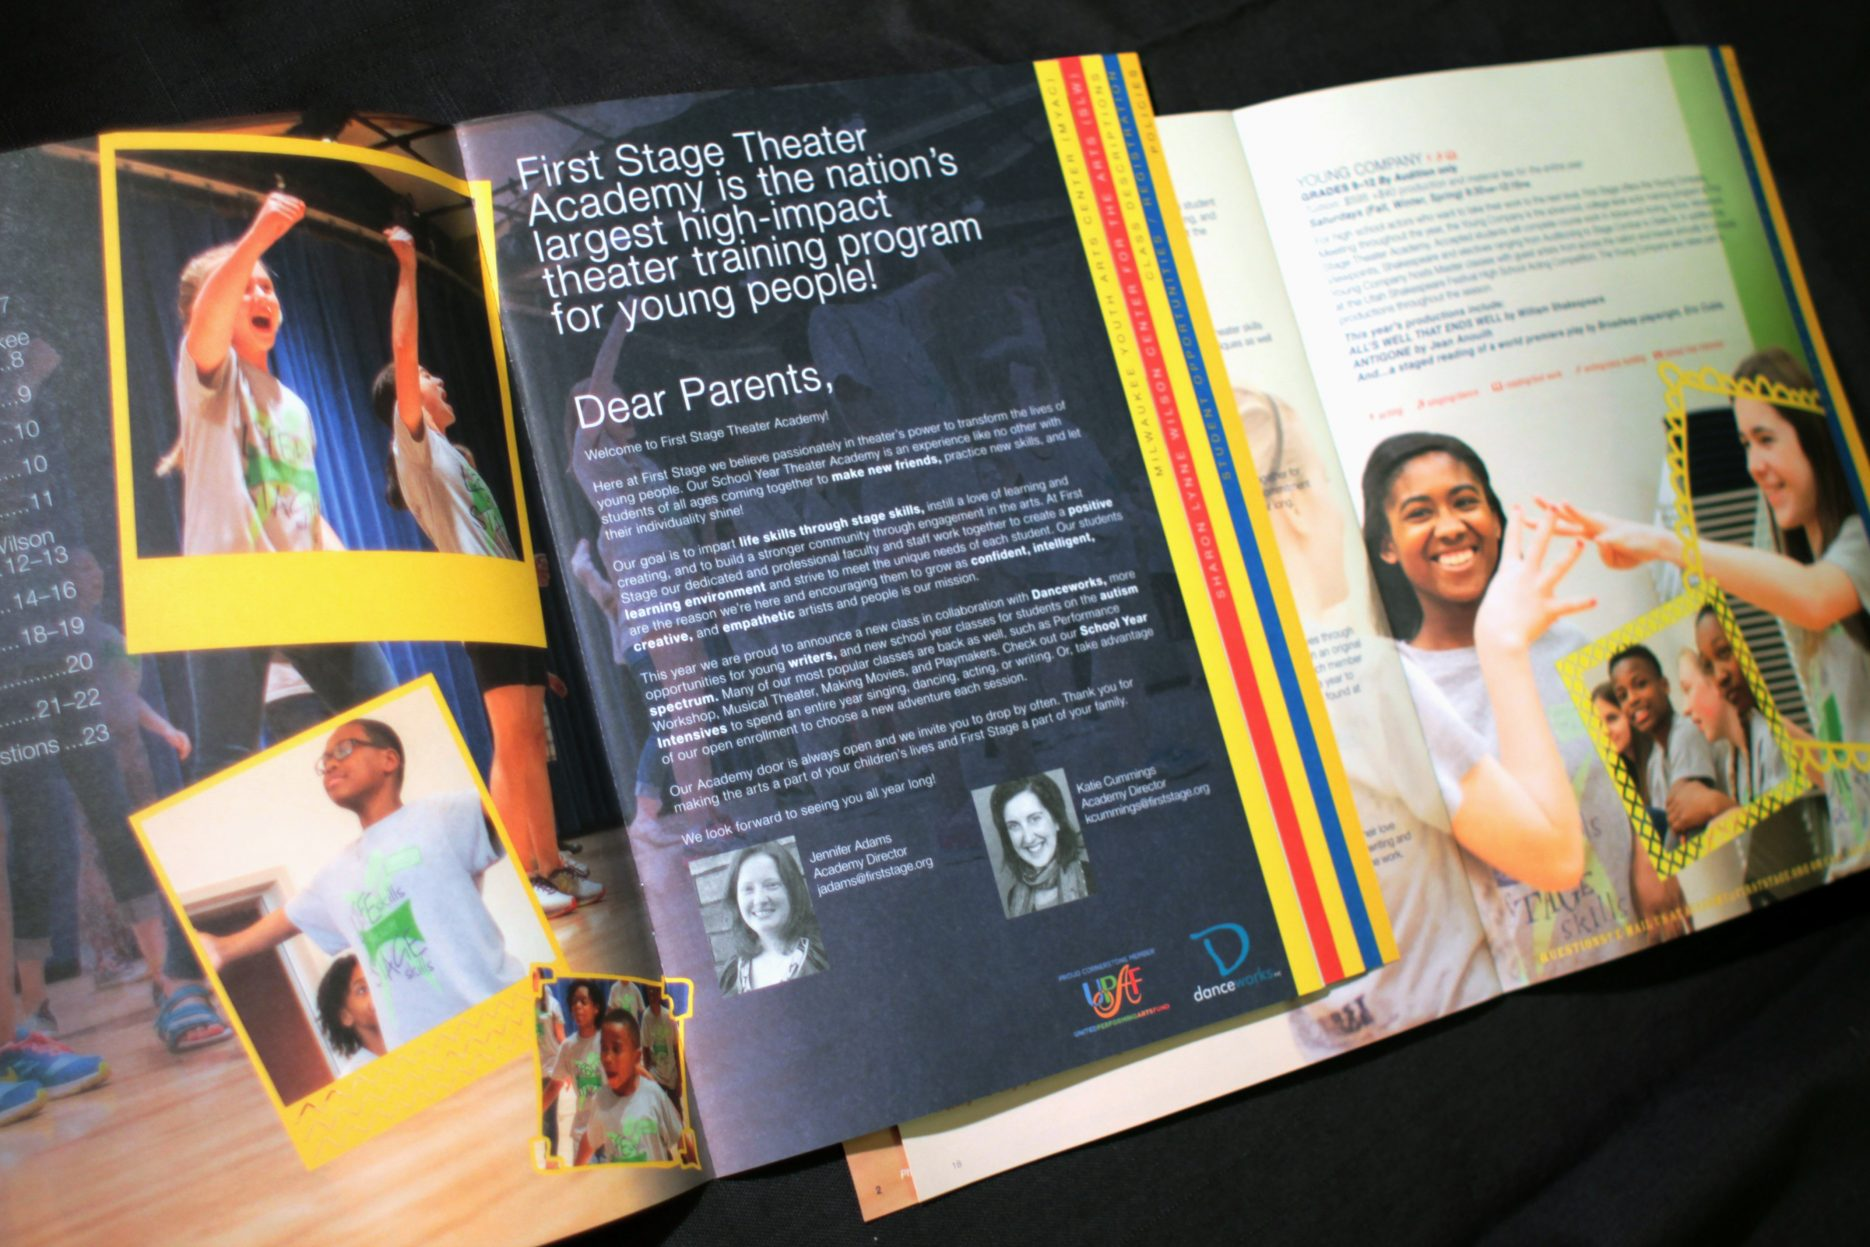 First Stage Theater Academy brochure spread